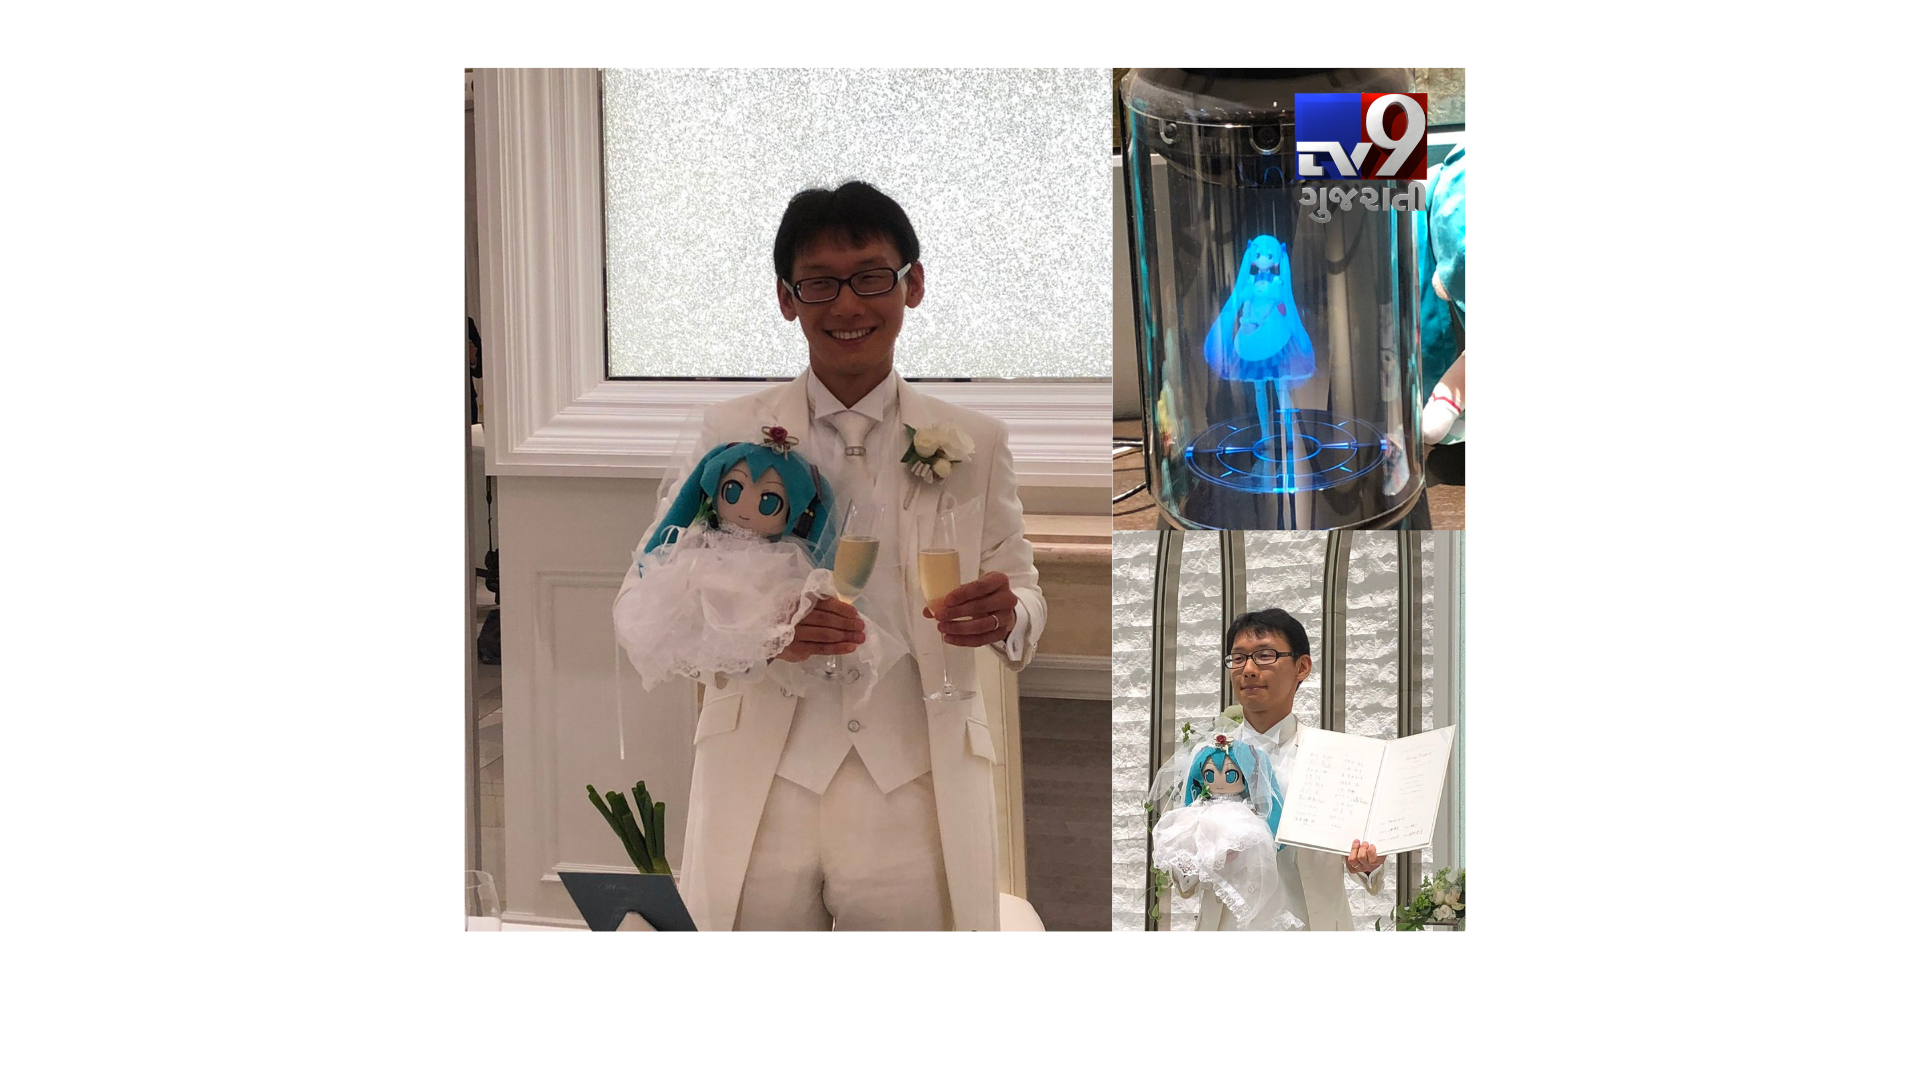 Japanese man marries hologram